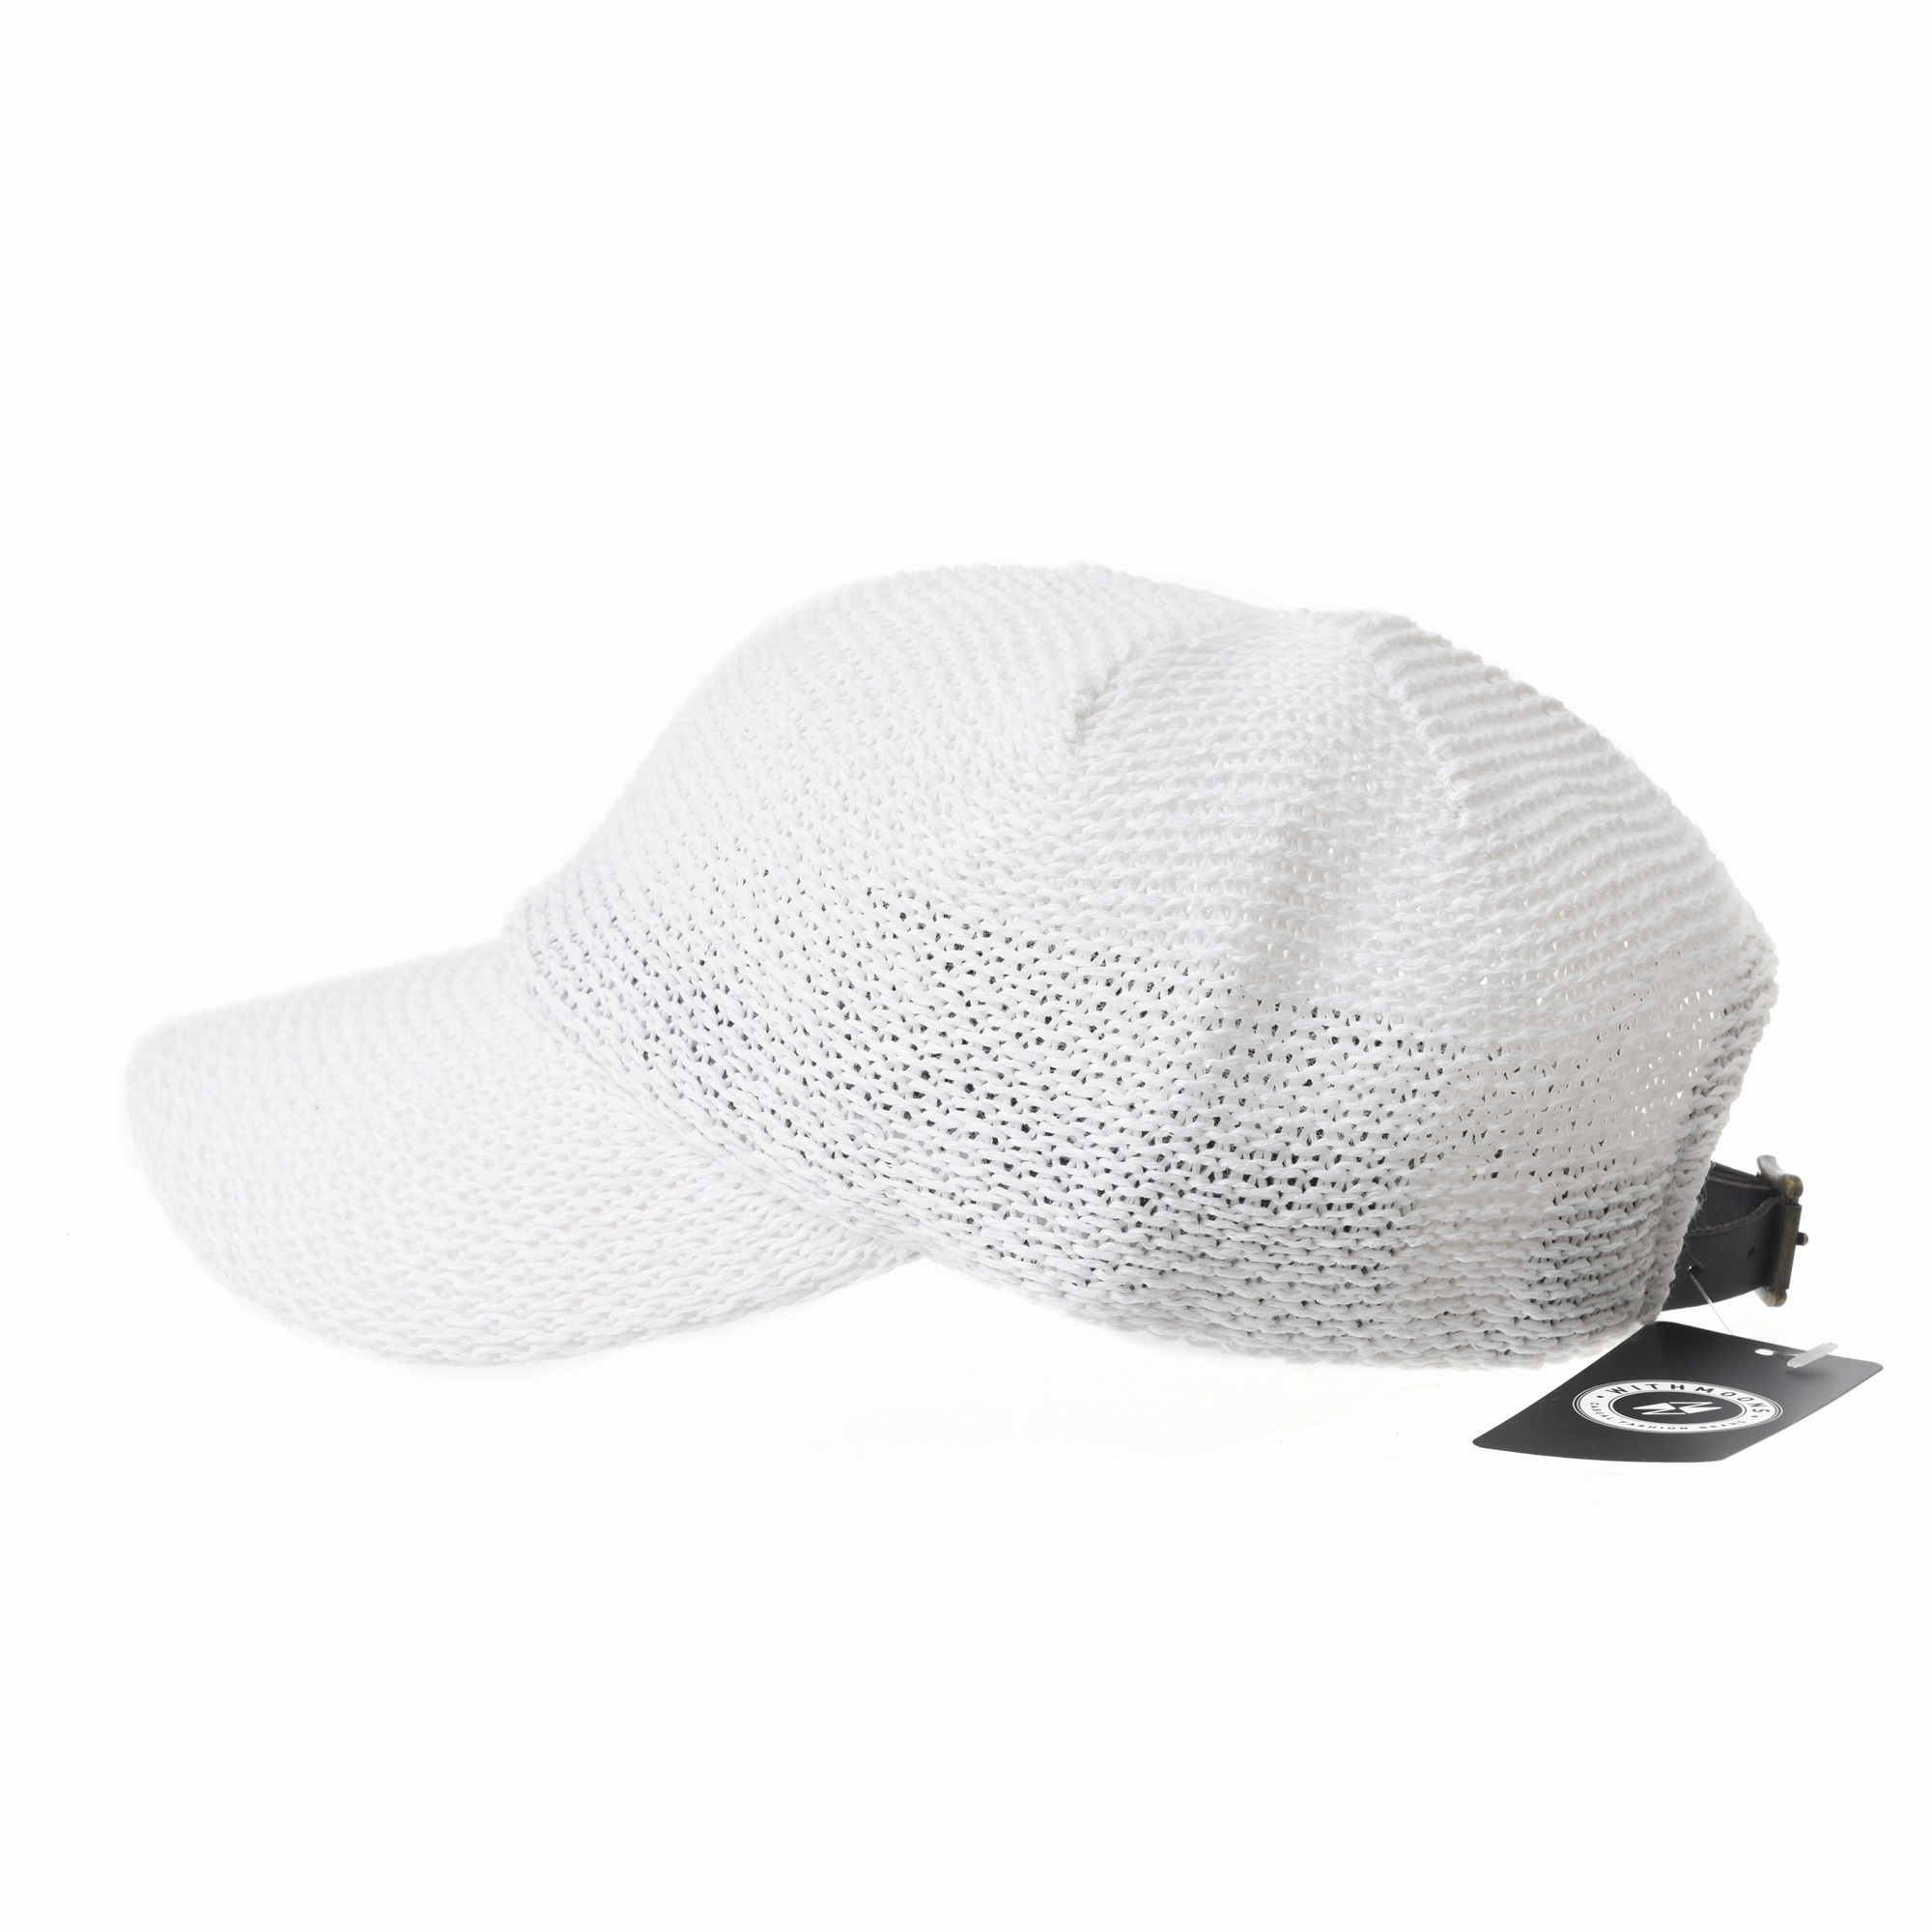 WITHMOONS Baseball Cap Quick Dry Mesh Breathable Patch Hat For Men Women CTM1207